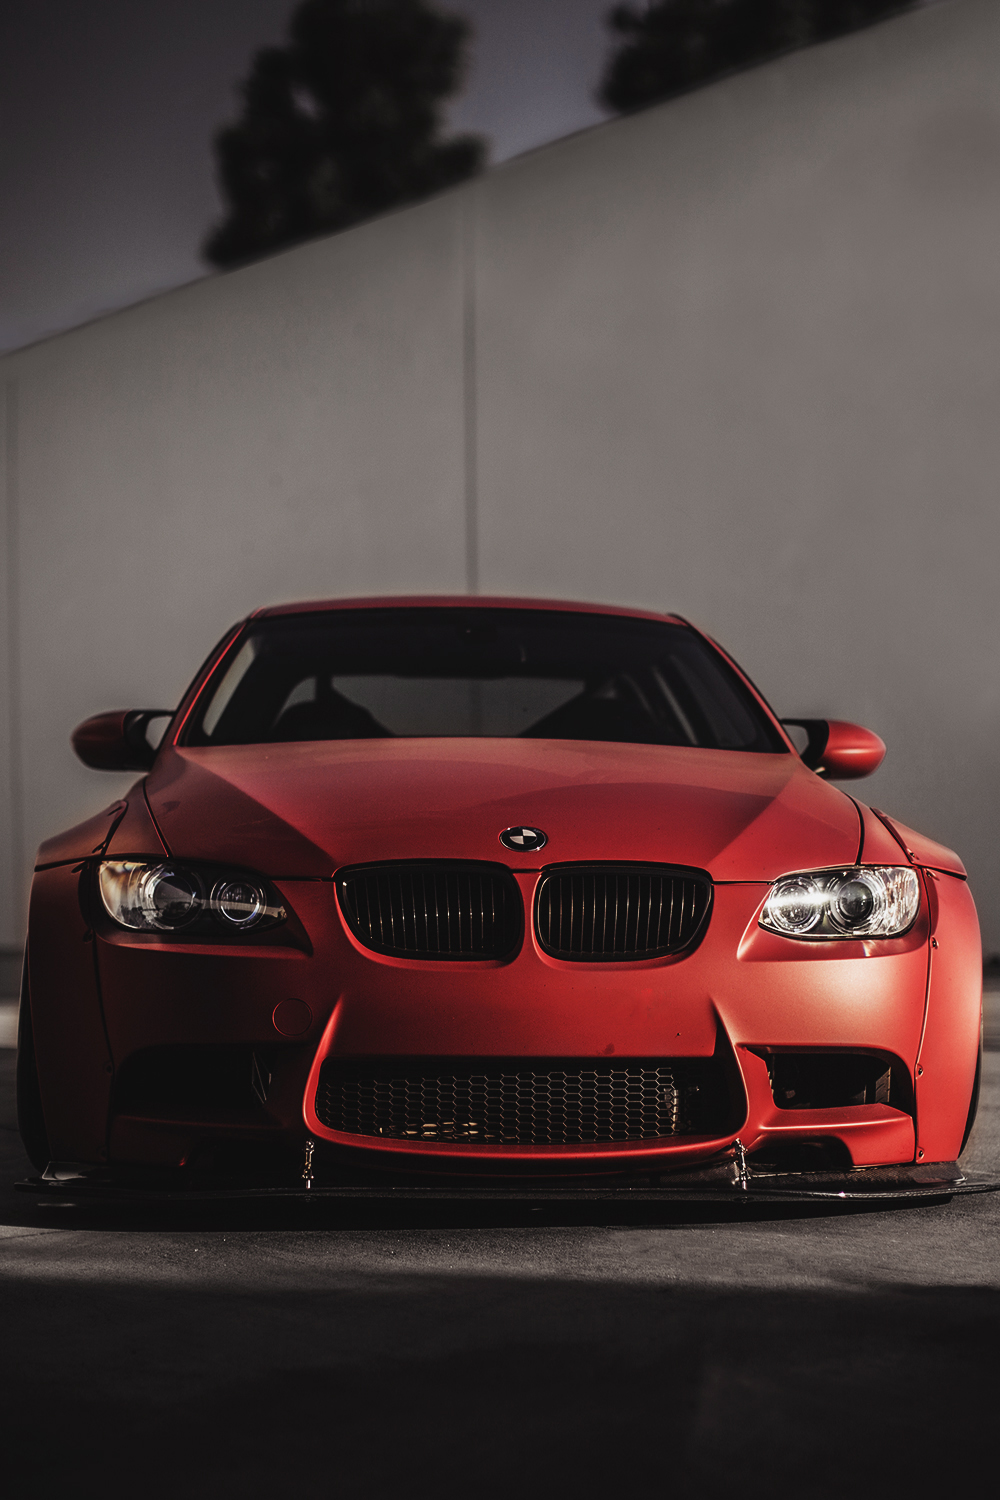 bmw red m3 car motor sportscar speed drive